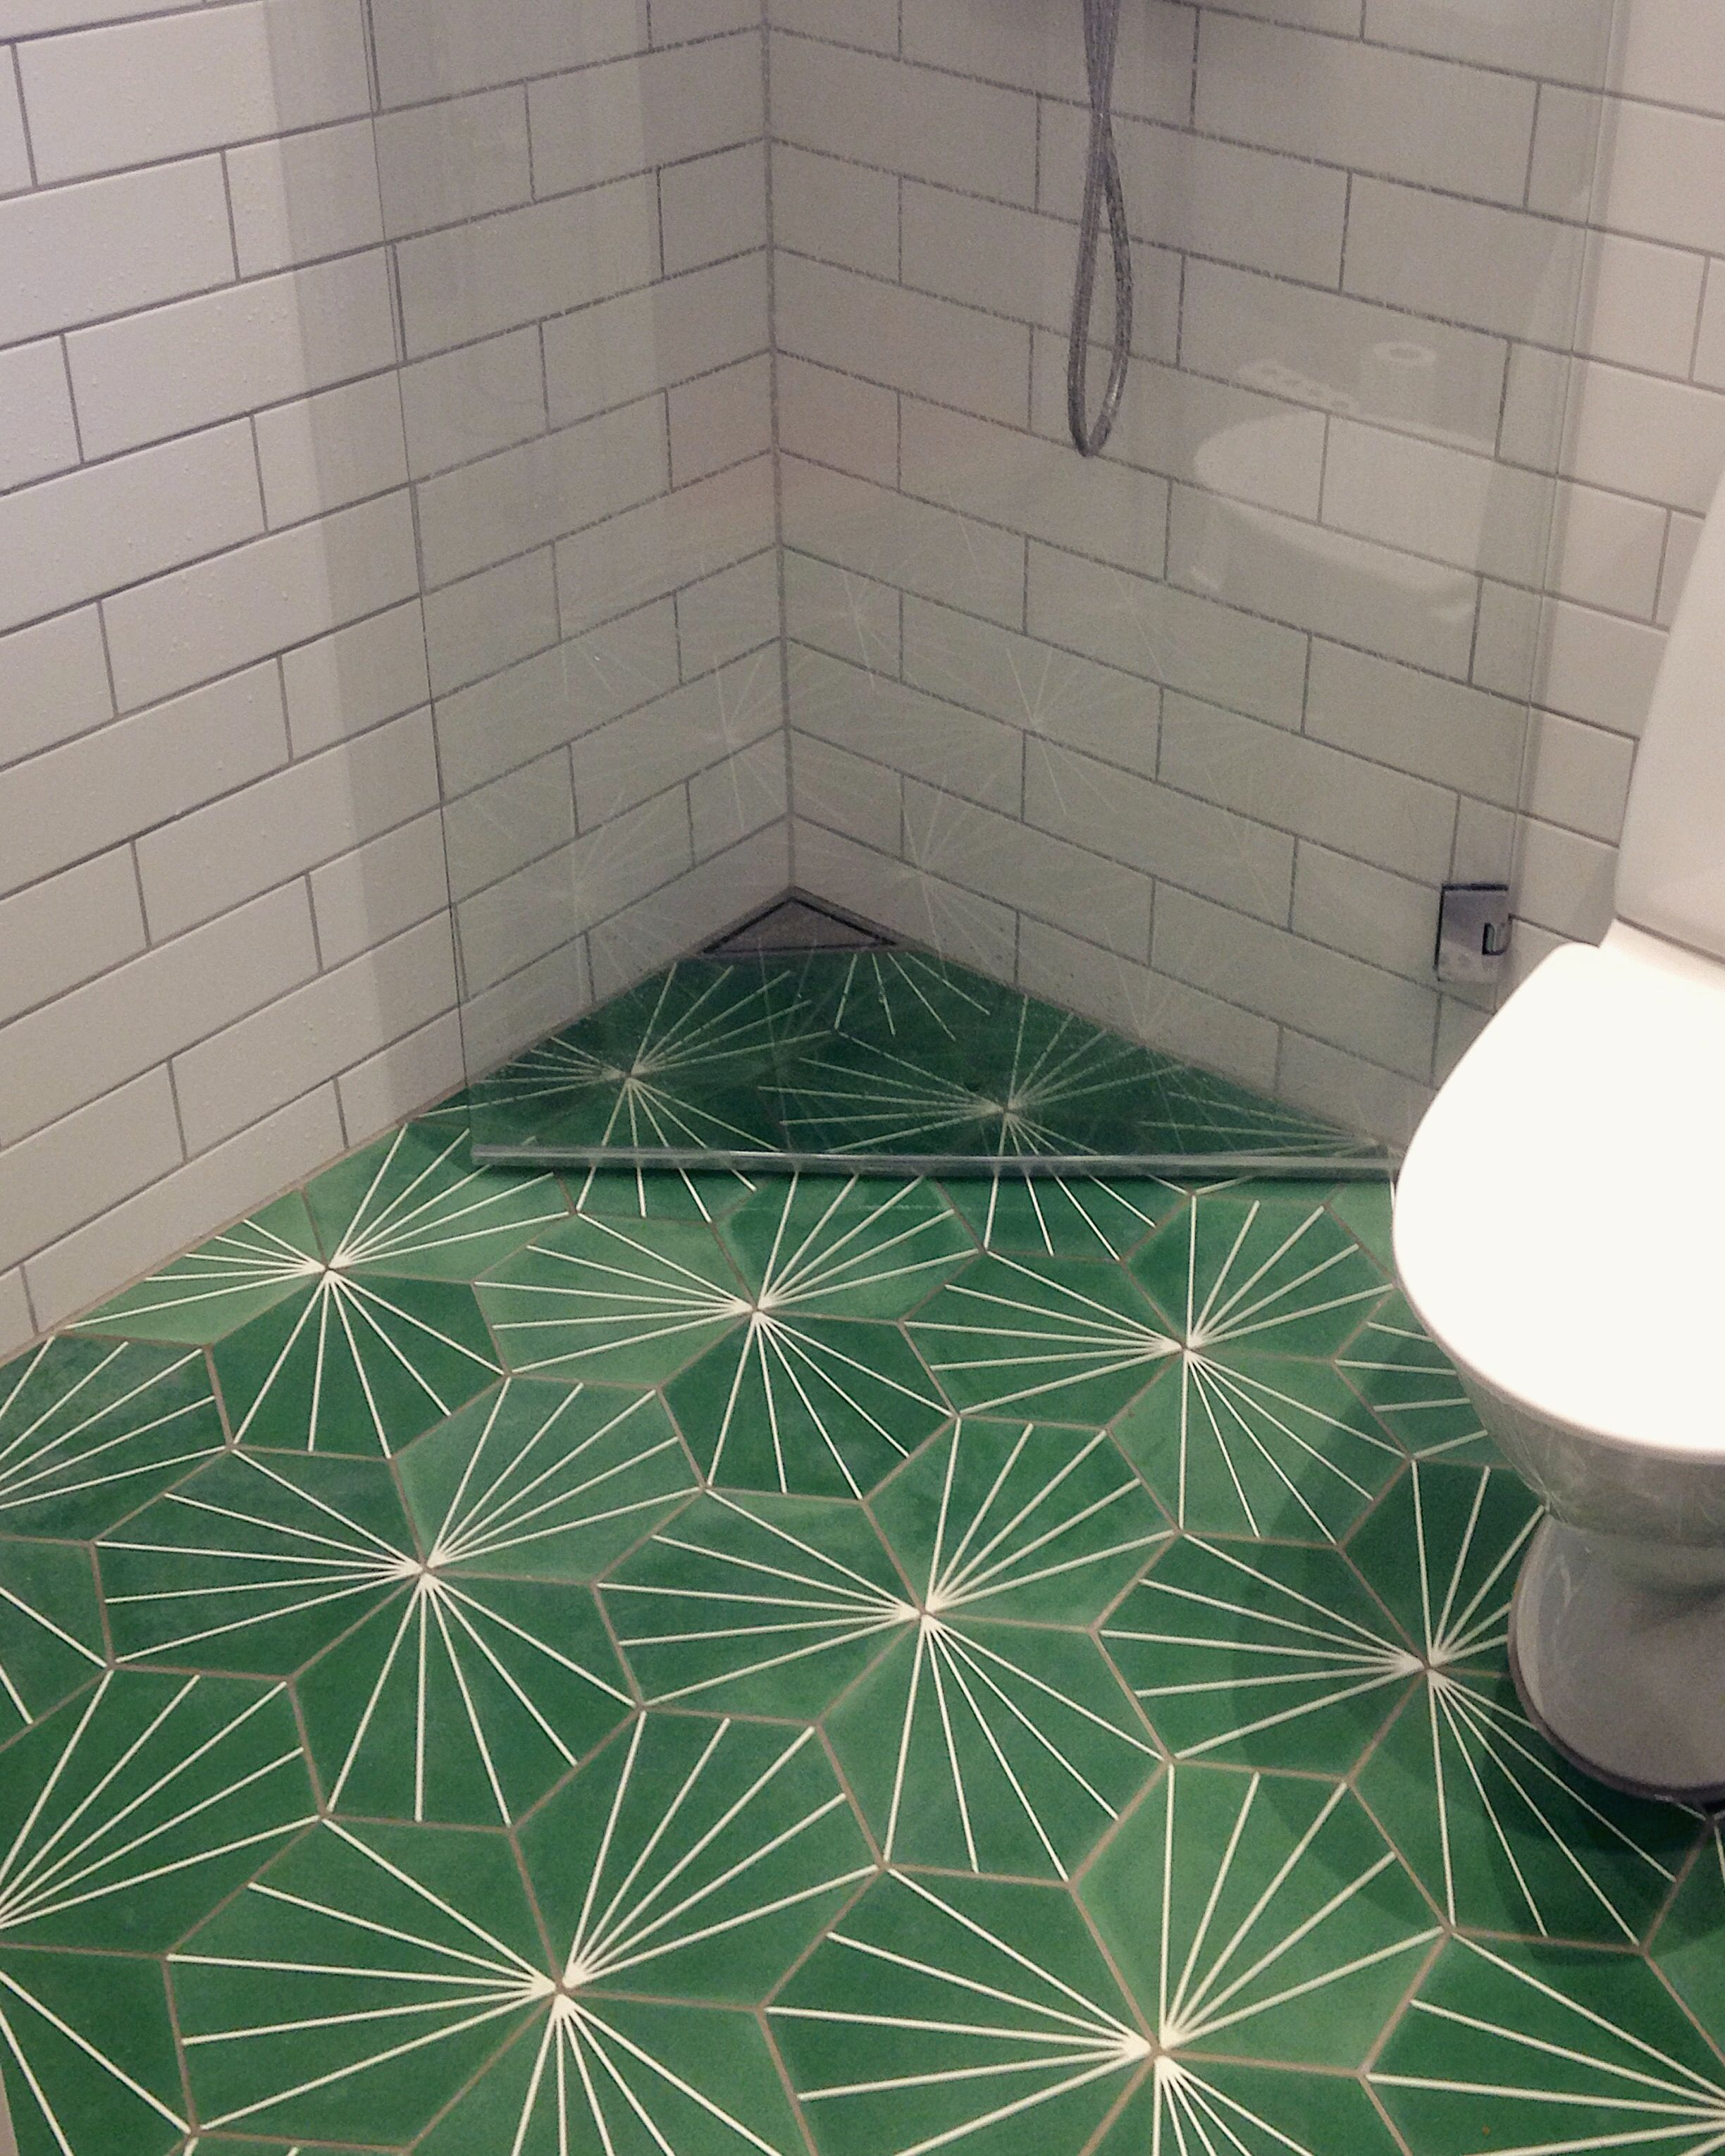 Bathrooms birmingham uk - Marrakech Design Dandelion Pea Green Tiles Unidrain Corner